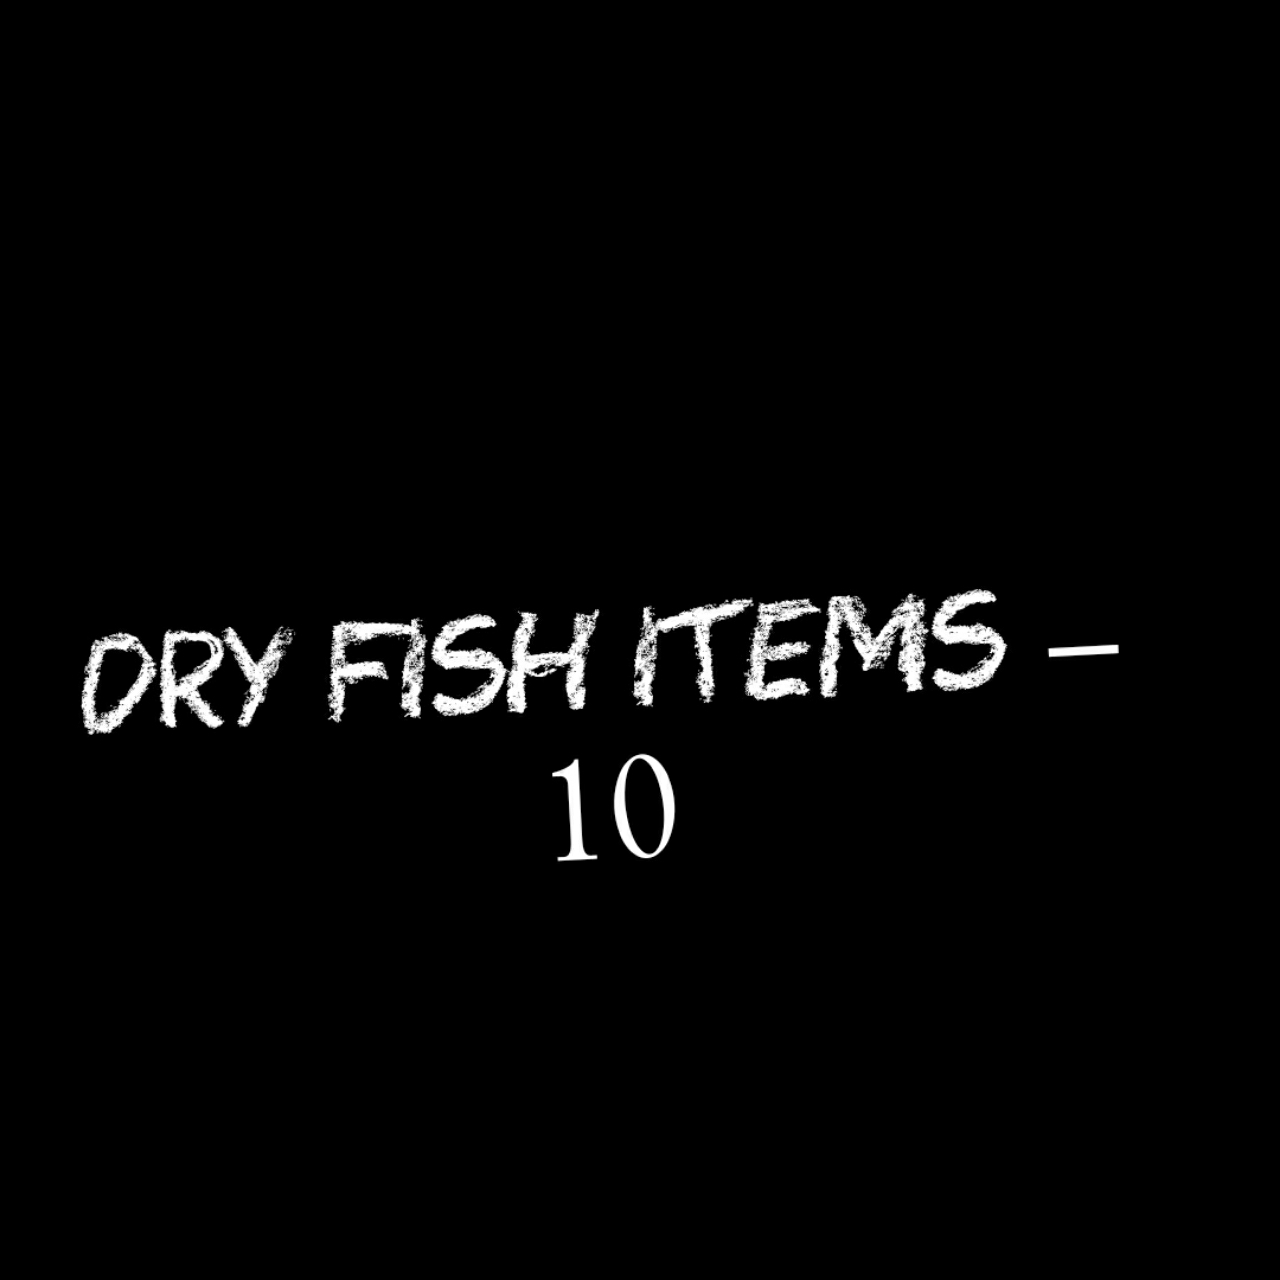 dry fish recipe - how to make dry fish recipe